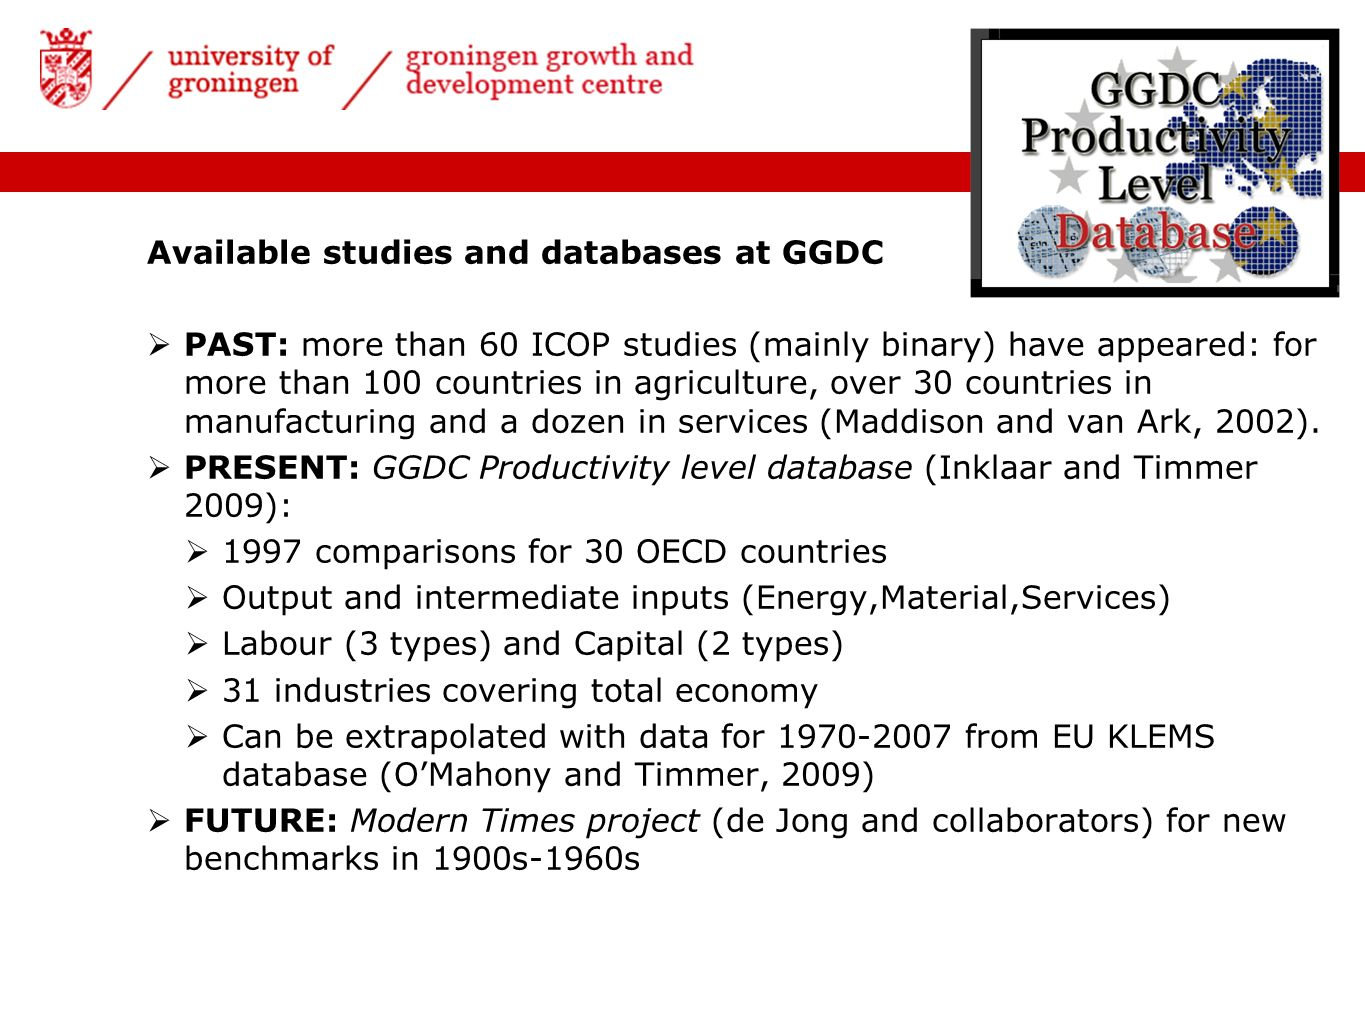 Available studies and databases at GGDC PAST: more than 60 ICOP studies (mainly binary) have appeared: for more than 100 countries in agriculture, over 30 countries in manufacturing and a dozen in services (Maddison and van Ark, 2002).